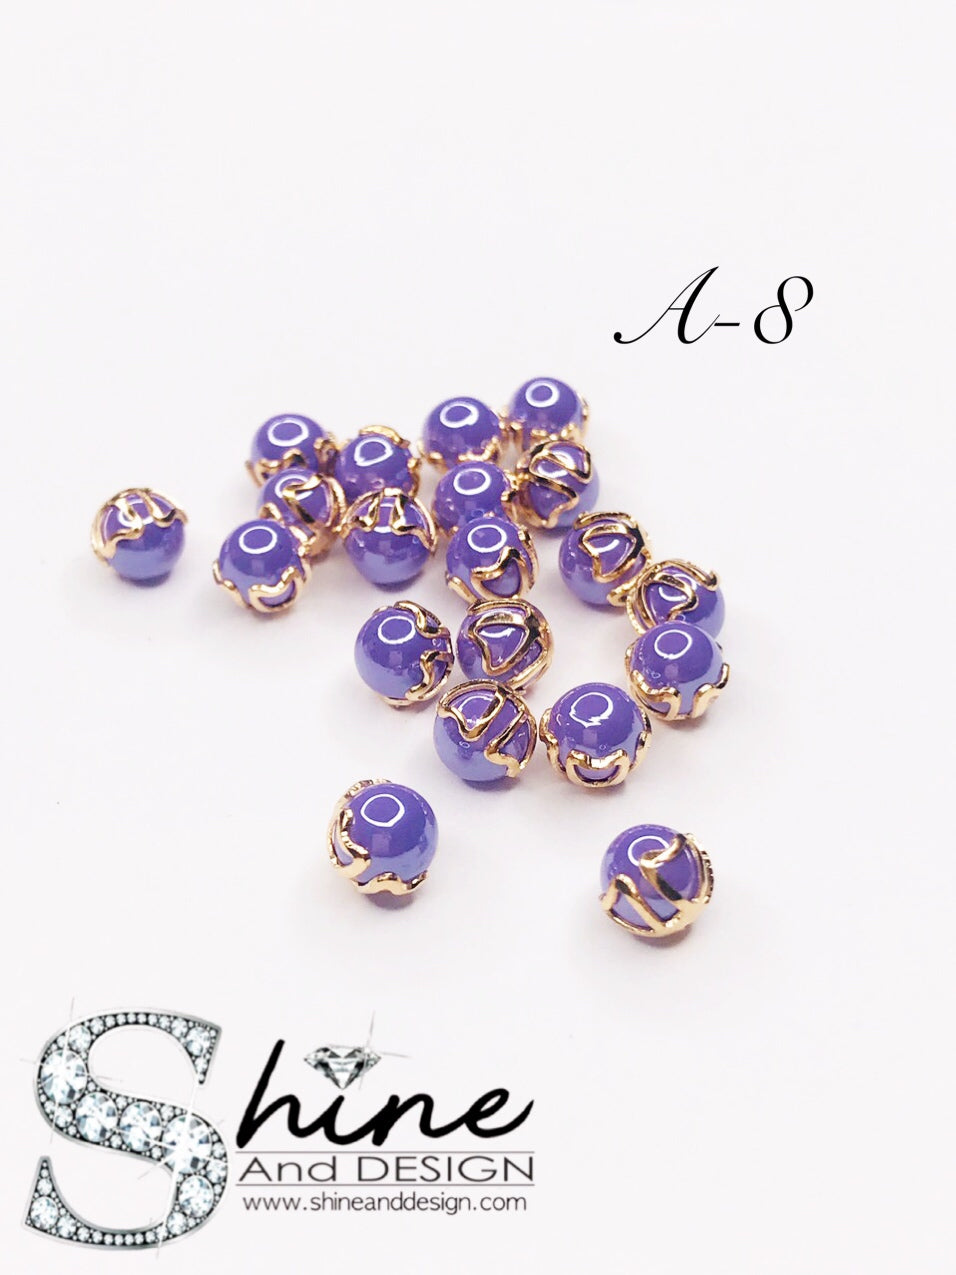 SHINE- Antique Pearls Collection ( 10 AVALIABLE COLOR DESIGNS)